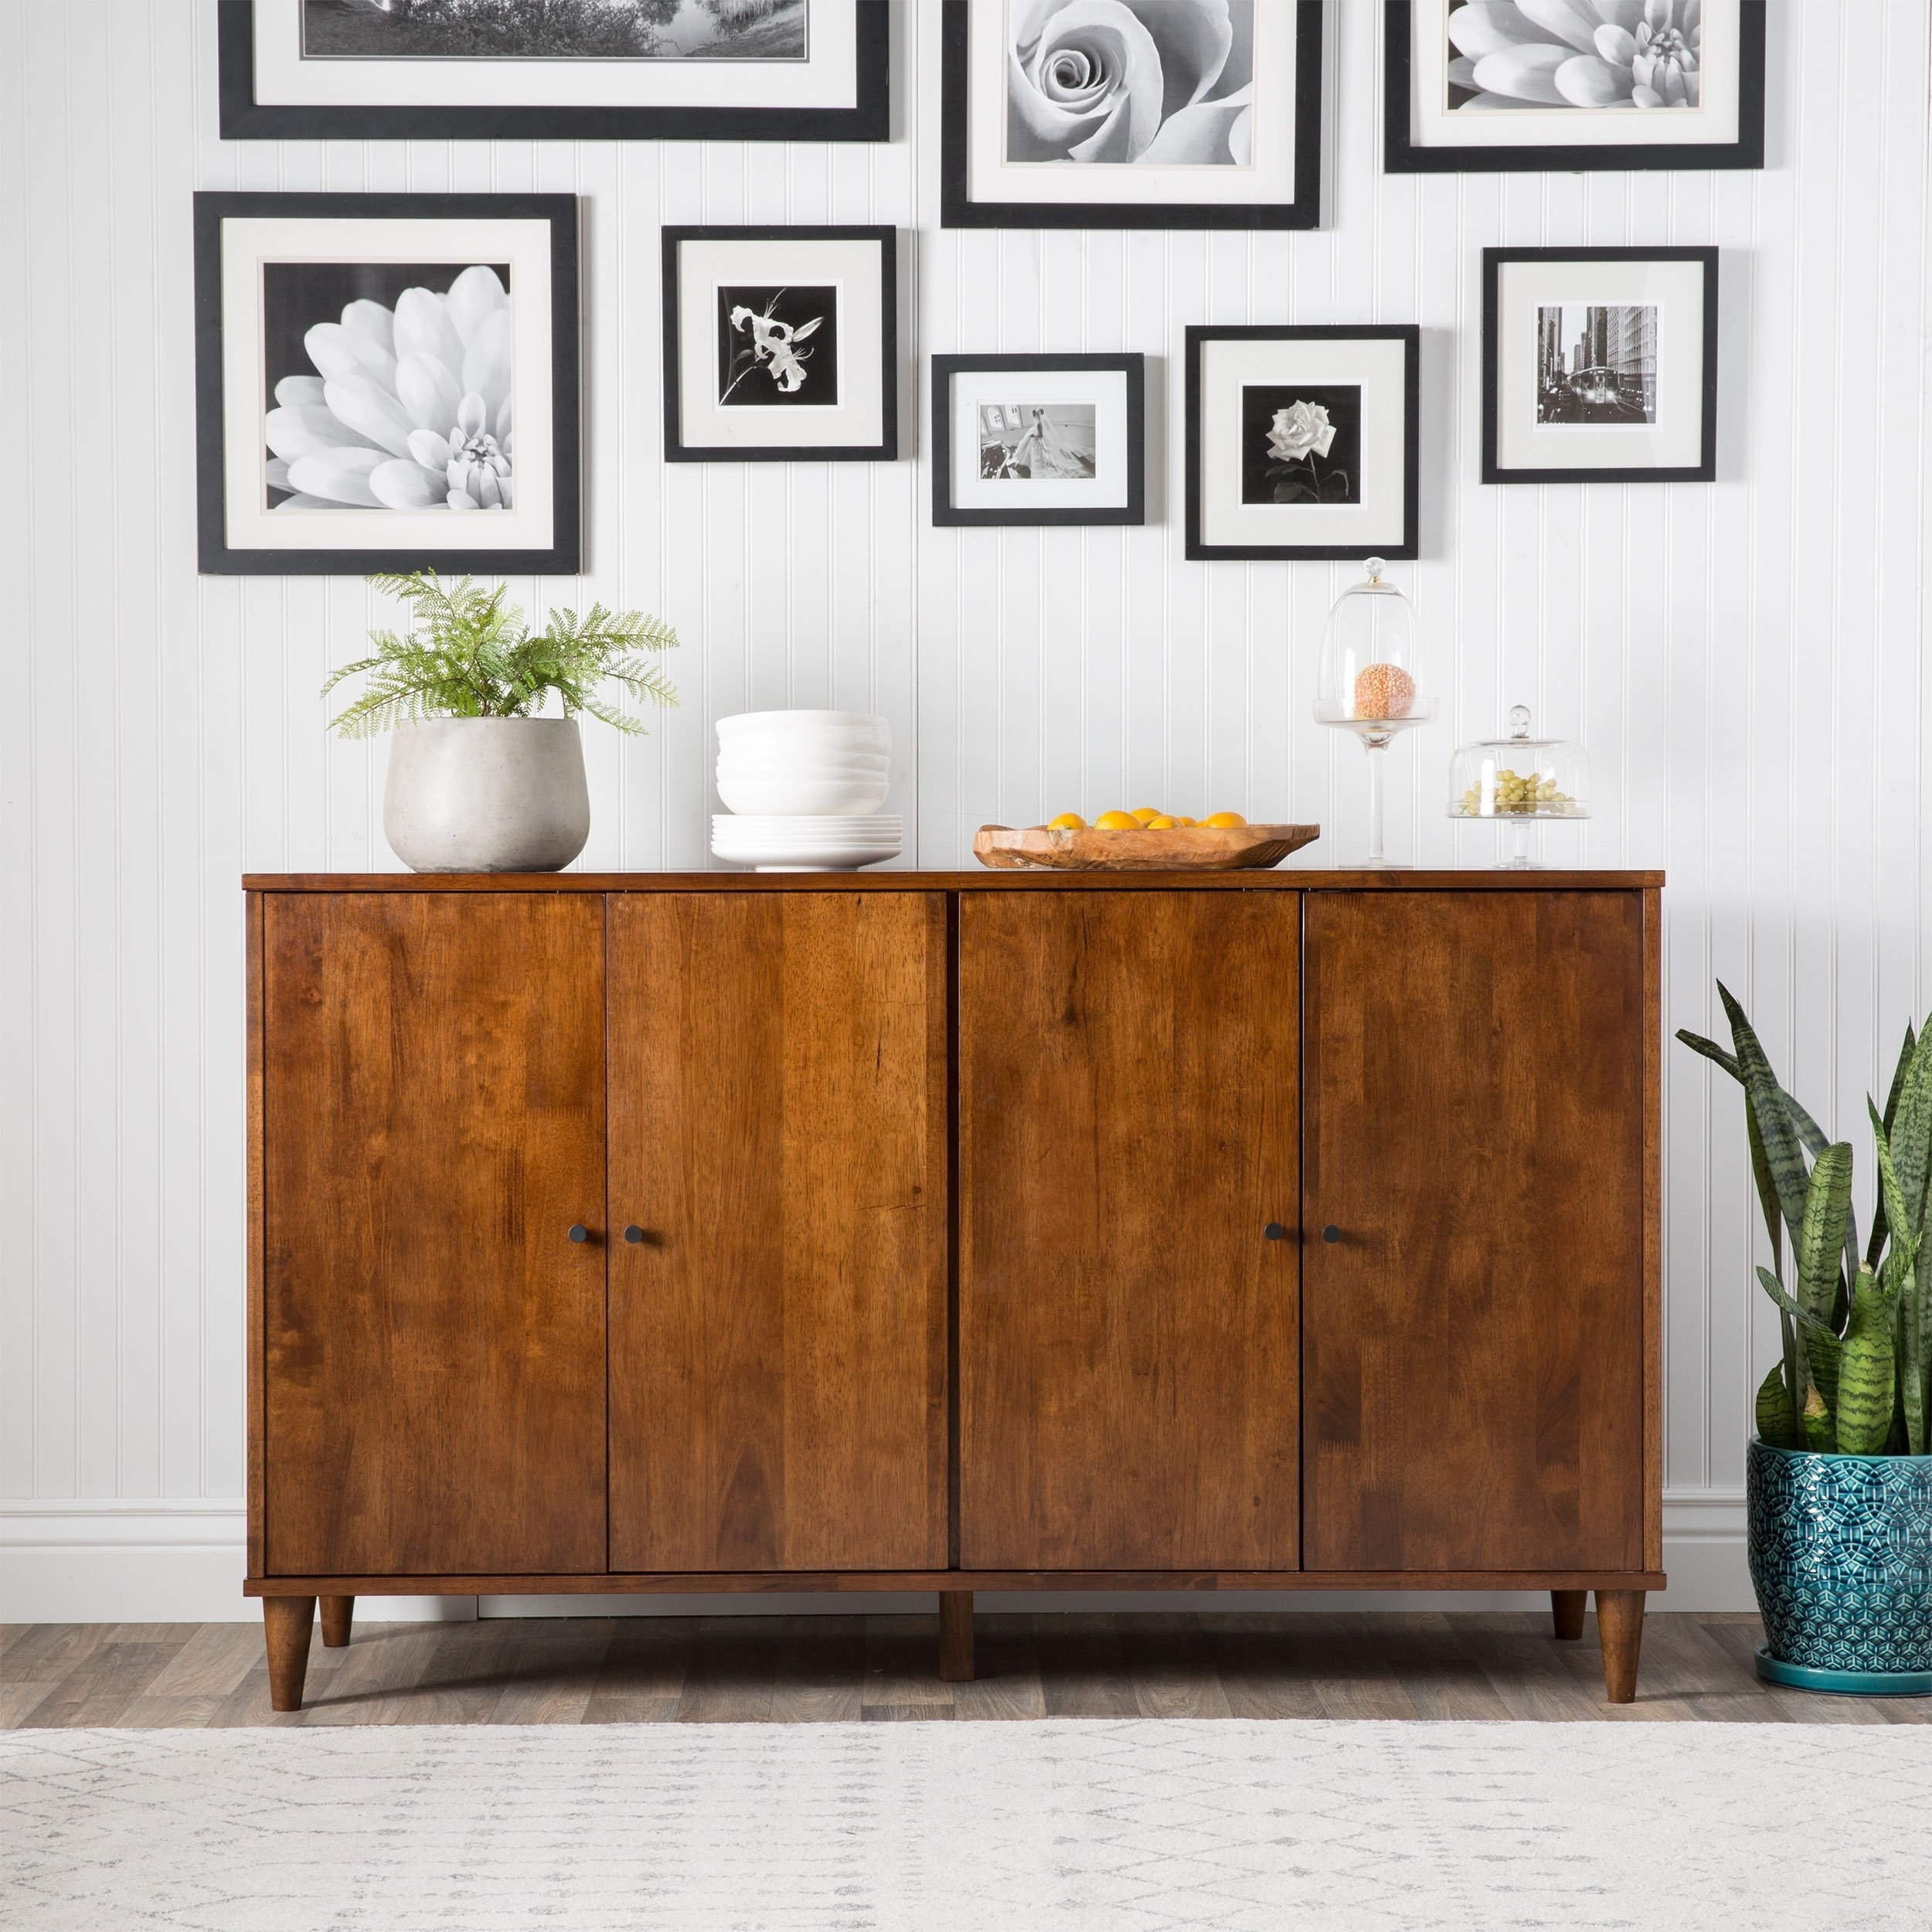 Shop Jasper Laine Vilas Tobacco-Finished 4-Door Dining Buffet - Free pertaining to Walnut Finish 4-Door Sideboards (Image 22 of 30)